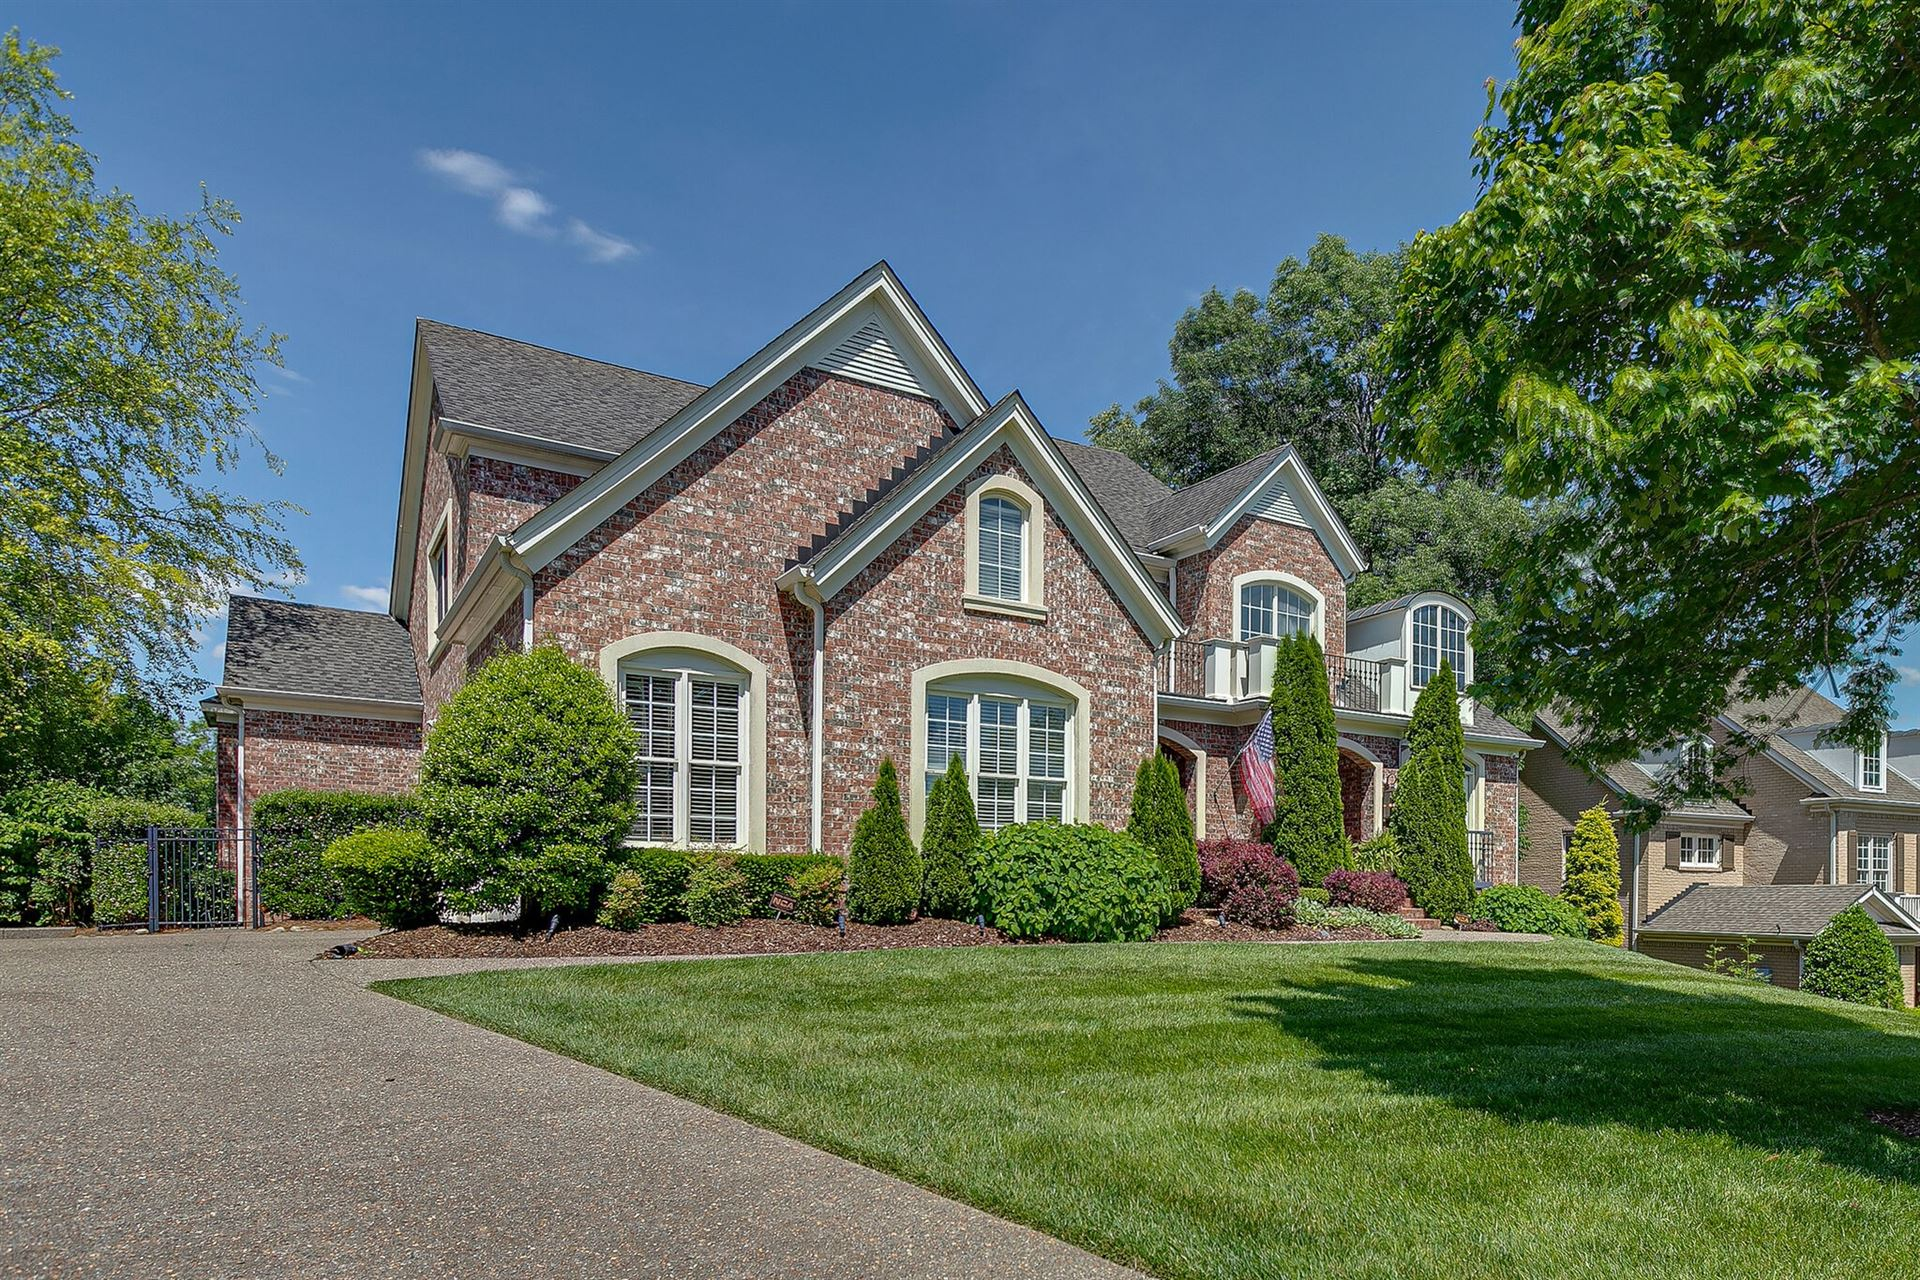 94 Governors Way, Brentwood, TN 37027 - MLS#: 2255174